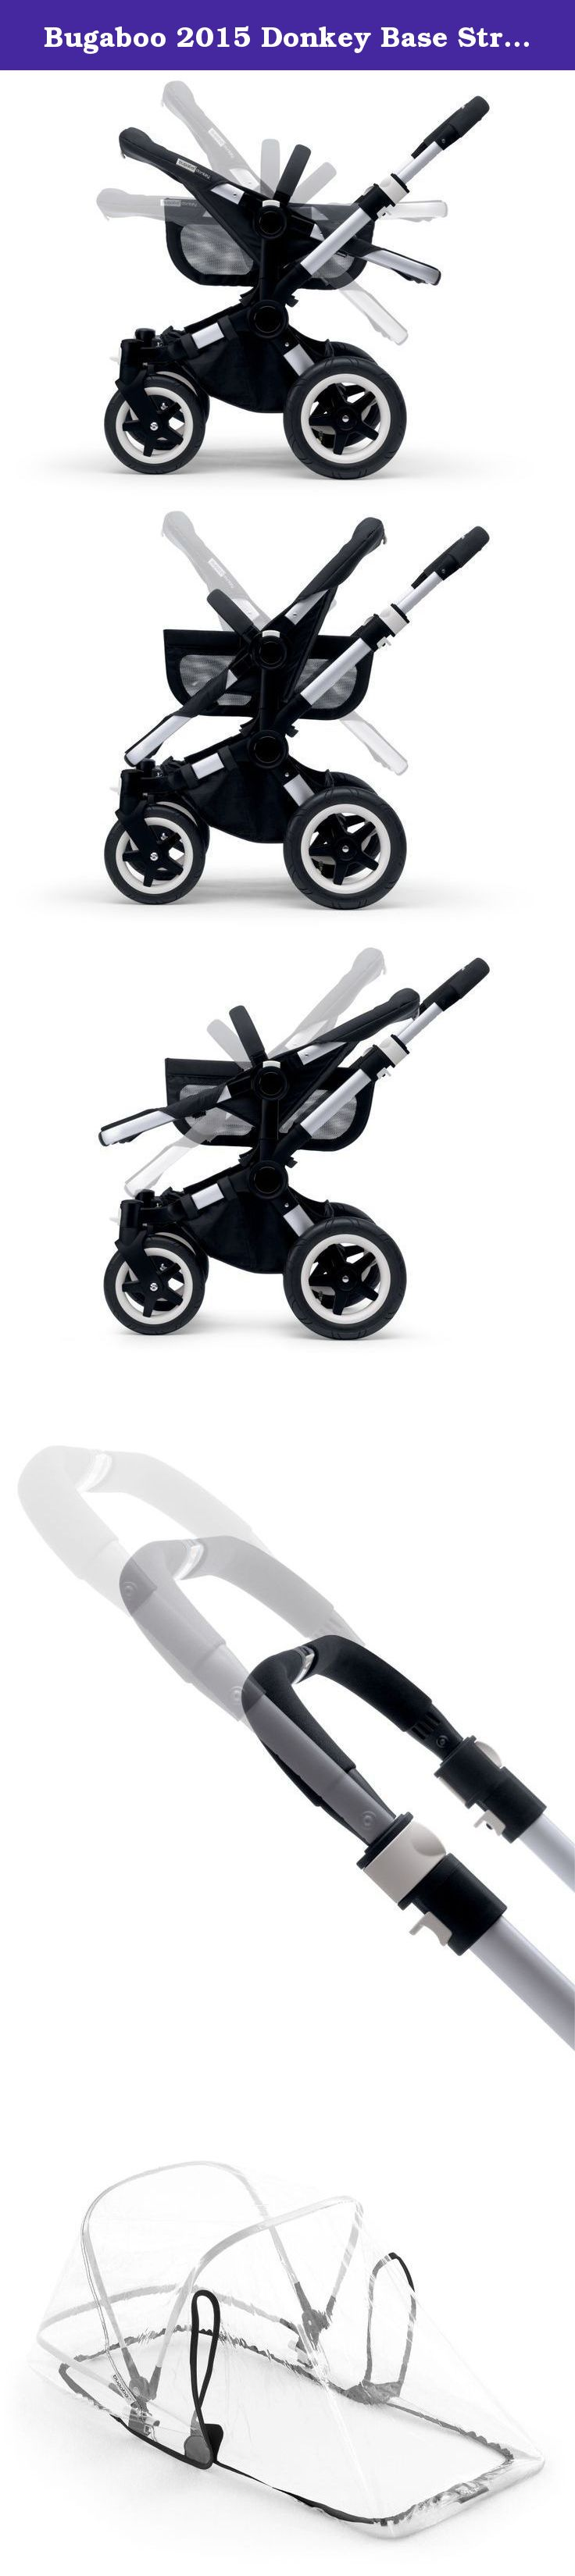 Bugaboo 2015 Donkey Base Stroller, Alu/Blk. Continuously